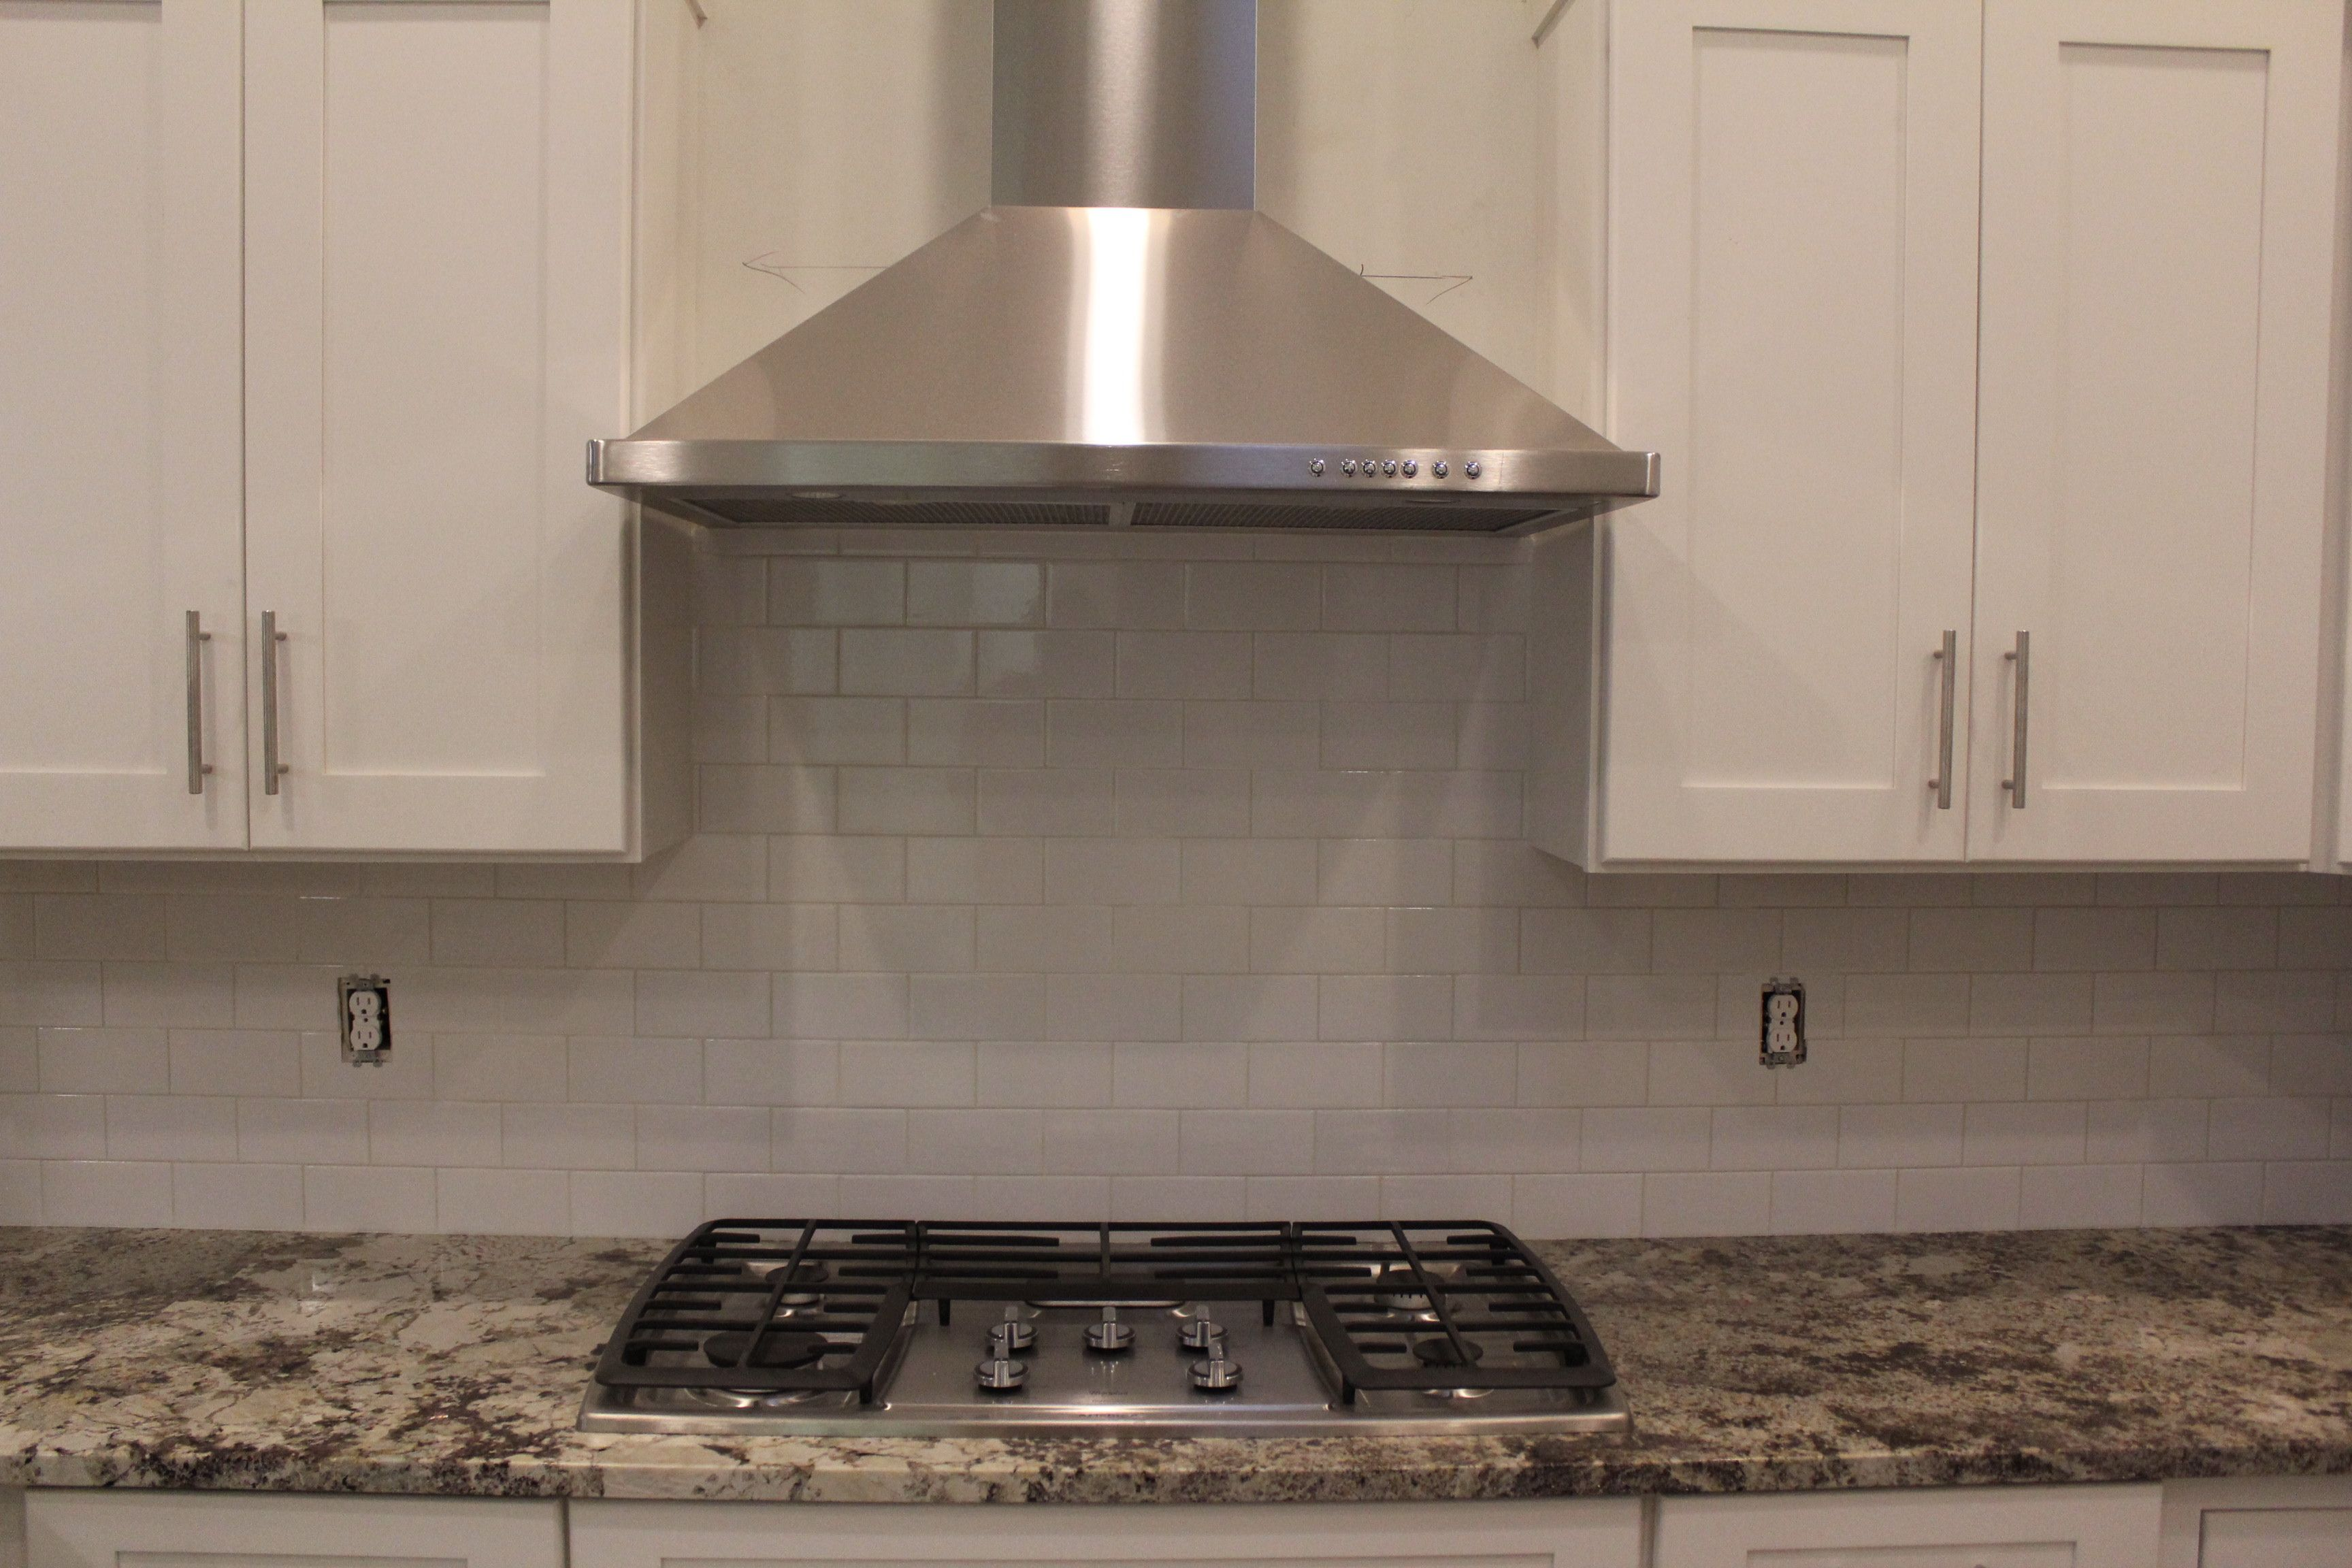 White subway tile backsplash 42 upper custom white kitchen white subway tile backsplash upper custom white kitchen cabinets stainless steel chimney style vented range hood gas cooktop and granite countertops dailygadgetfo Images